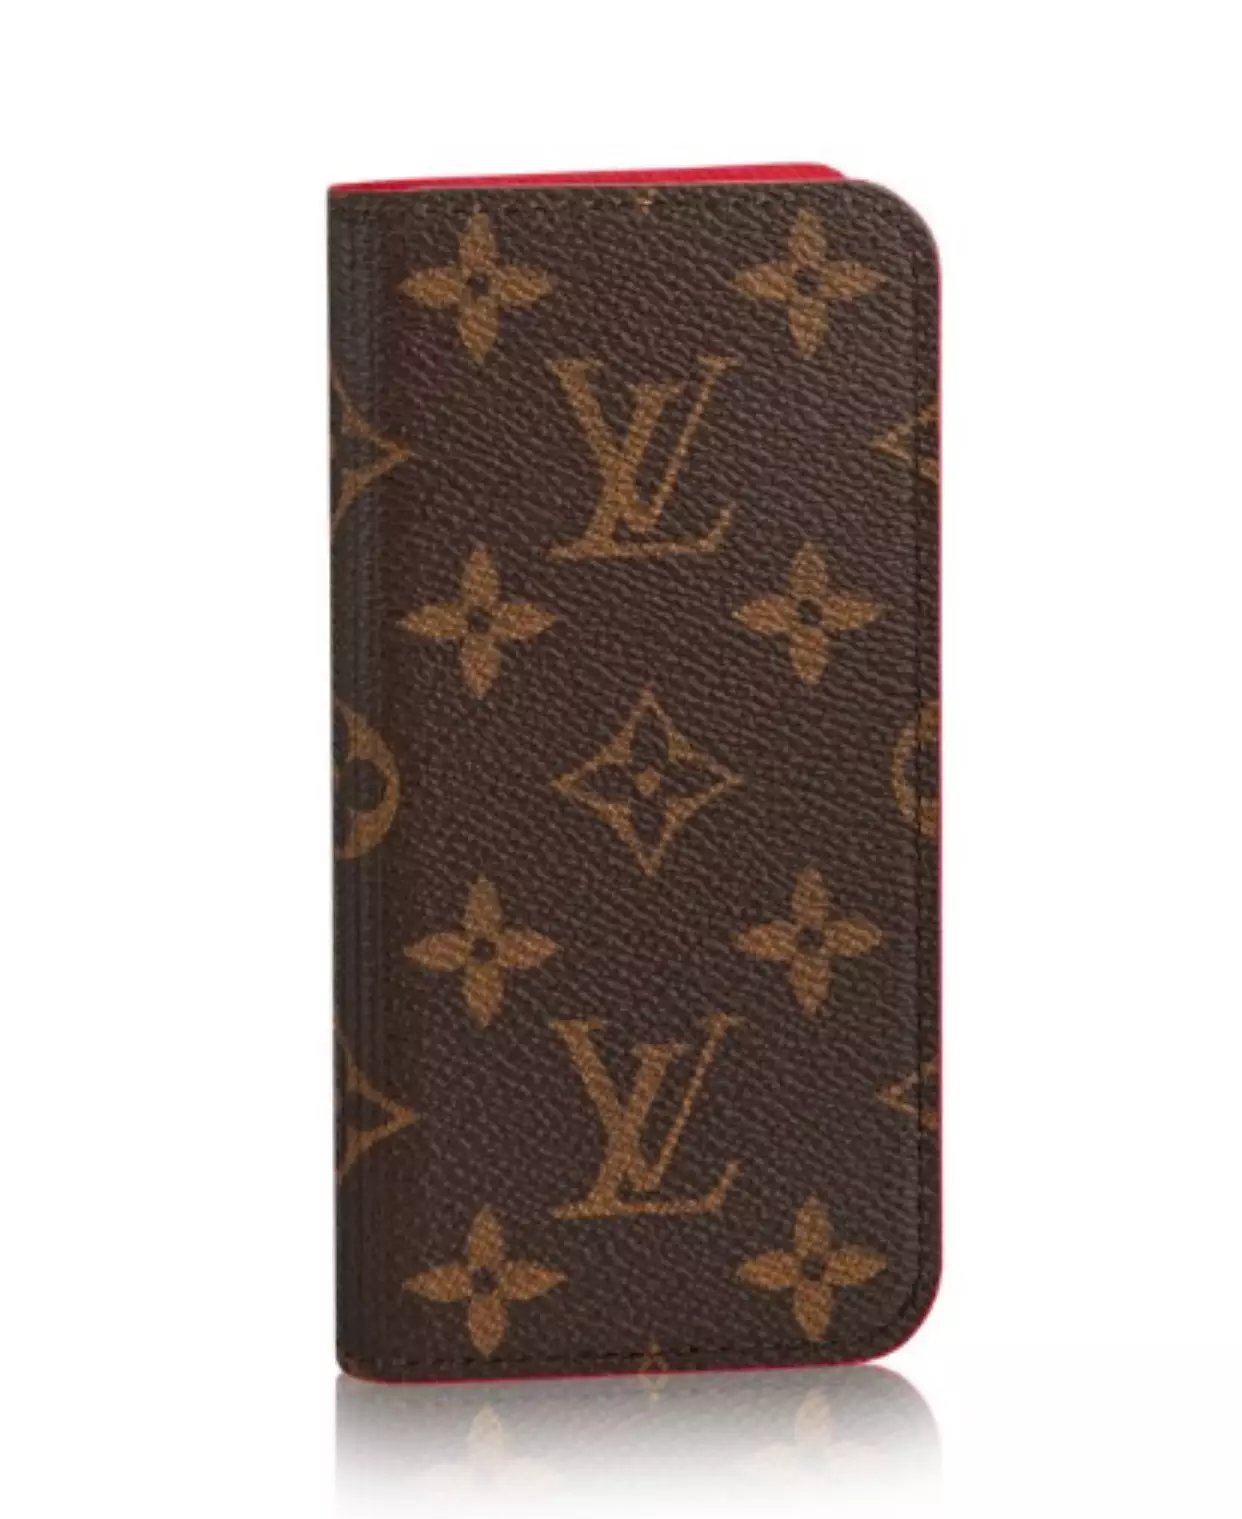 edle iphone hüllen lederhülle iphone Louis Vuitton iphone 8 Plus hüllen iphone 3 hülle iphone 8 Plus hülle rot iphone 8 Plus cover 8 Pluslbst gestalten iphone 8 Plus was kann es handyhüllen für iphone 8 Plus handytasche für iphone 8 Plus